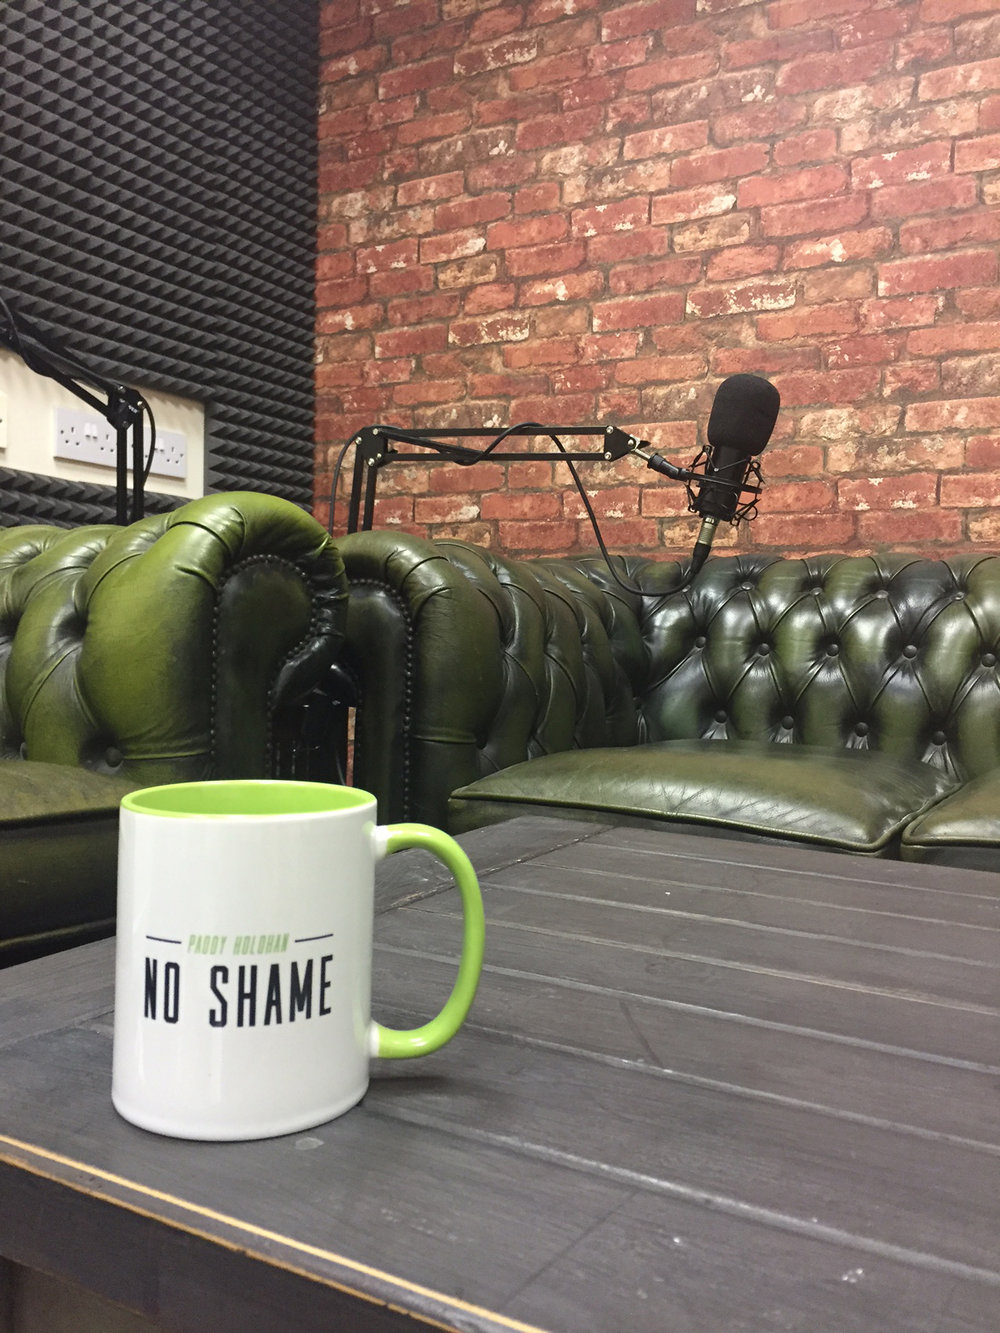 The new No Shame studio incorporating the already world renowned green couch!